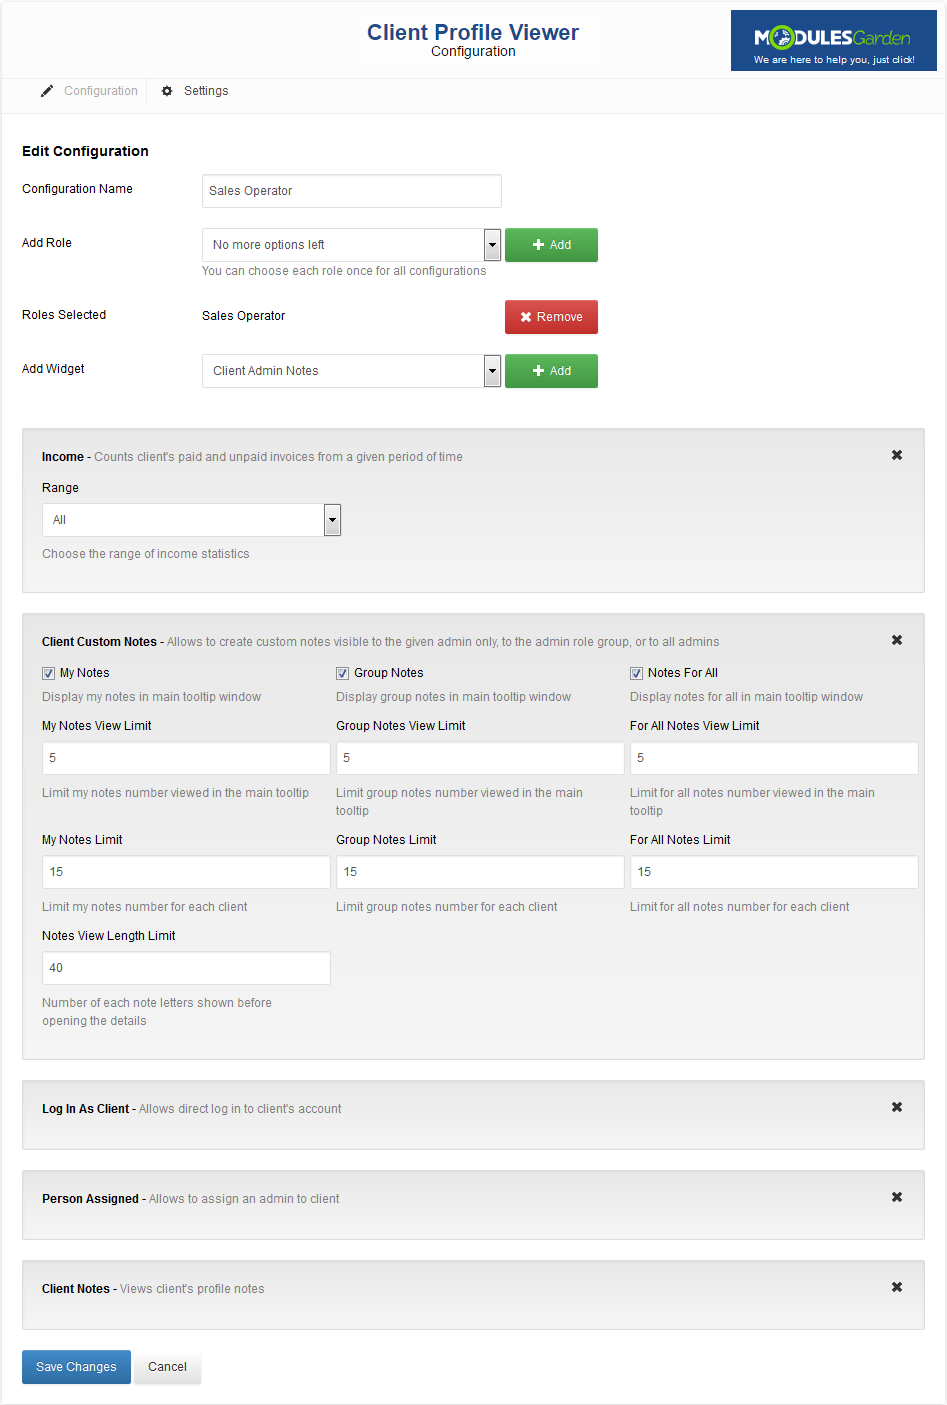 Client Profile Viewer For WHMCS: Screen 7